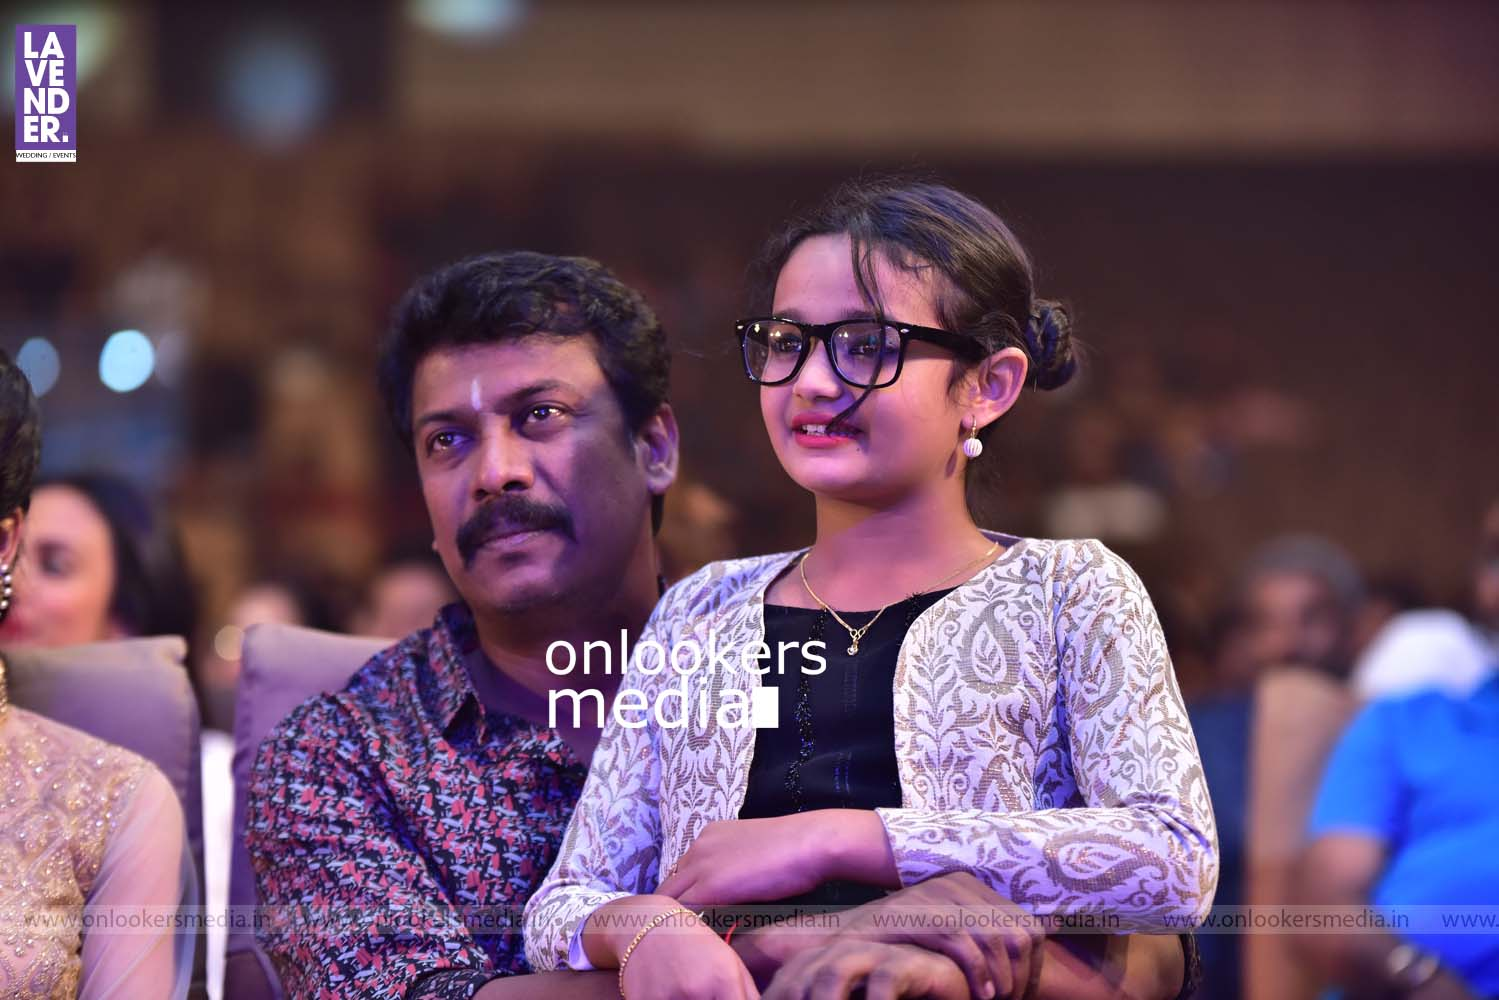 http://onlookersmedia.in/wp-content/uploads/2017/01/Oppam-100-Days-Celebration-Stills-Photos-50.jpg